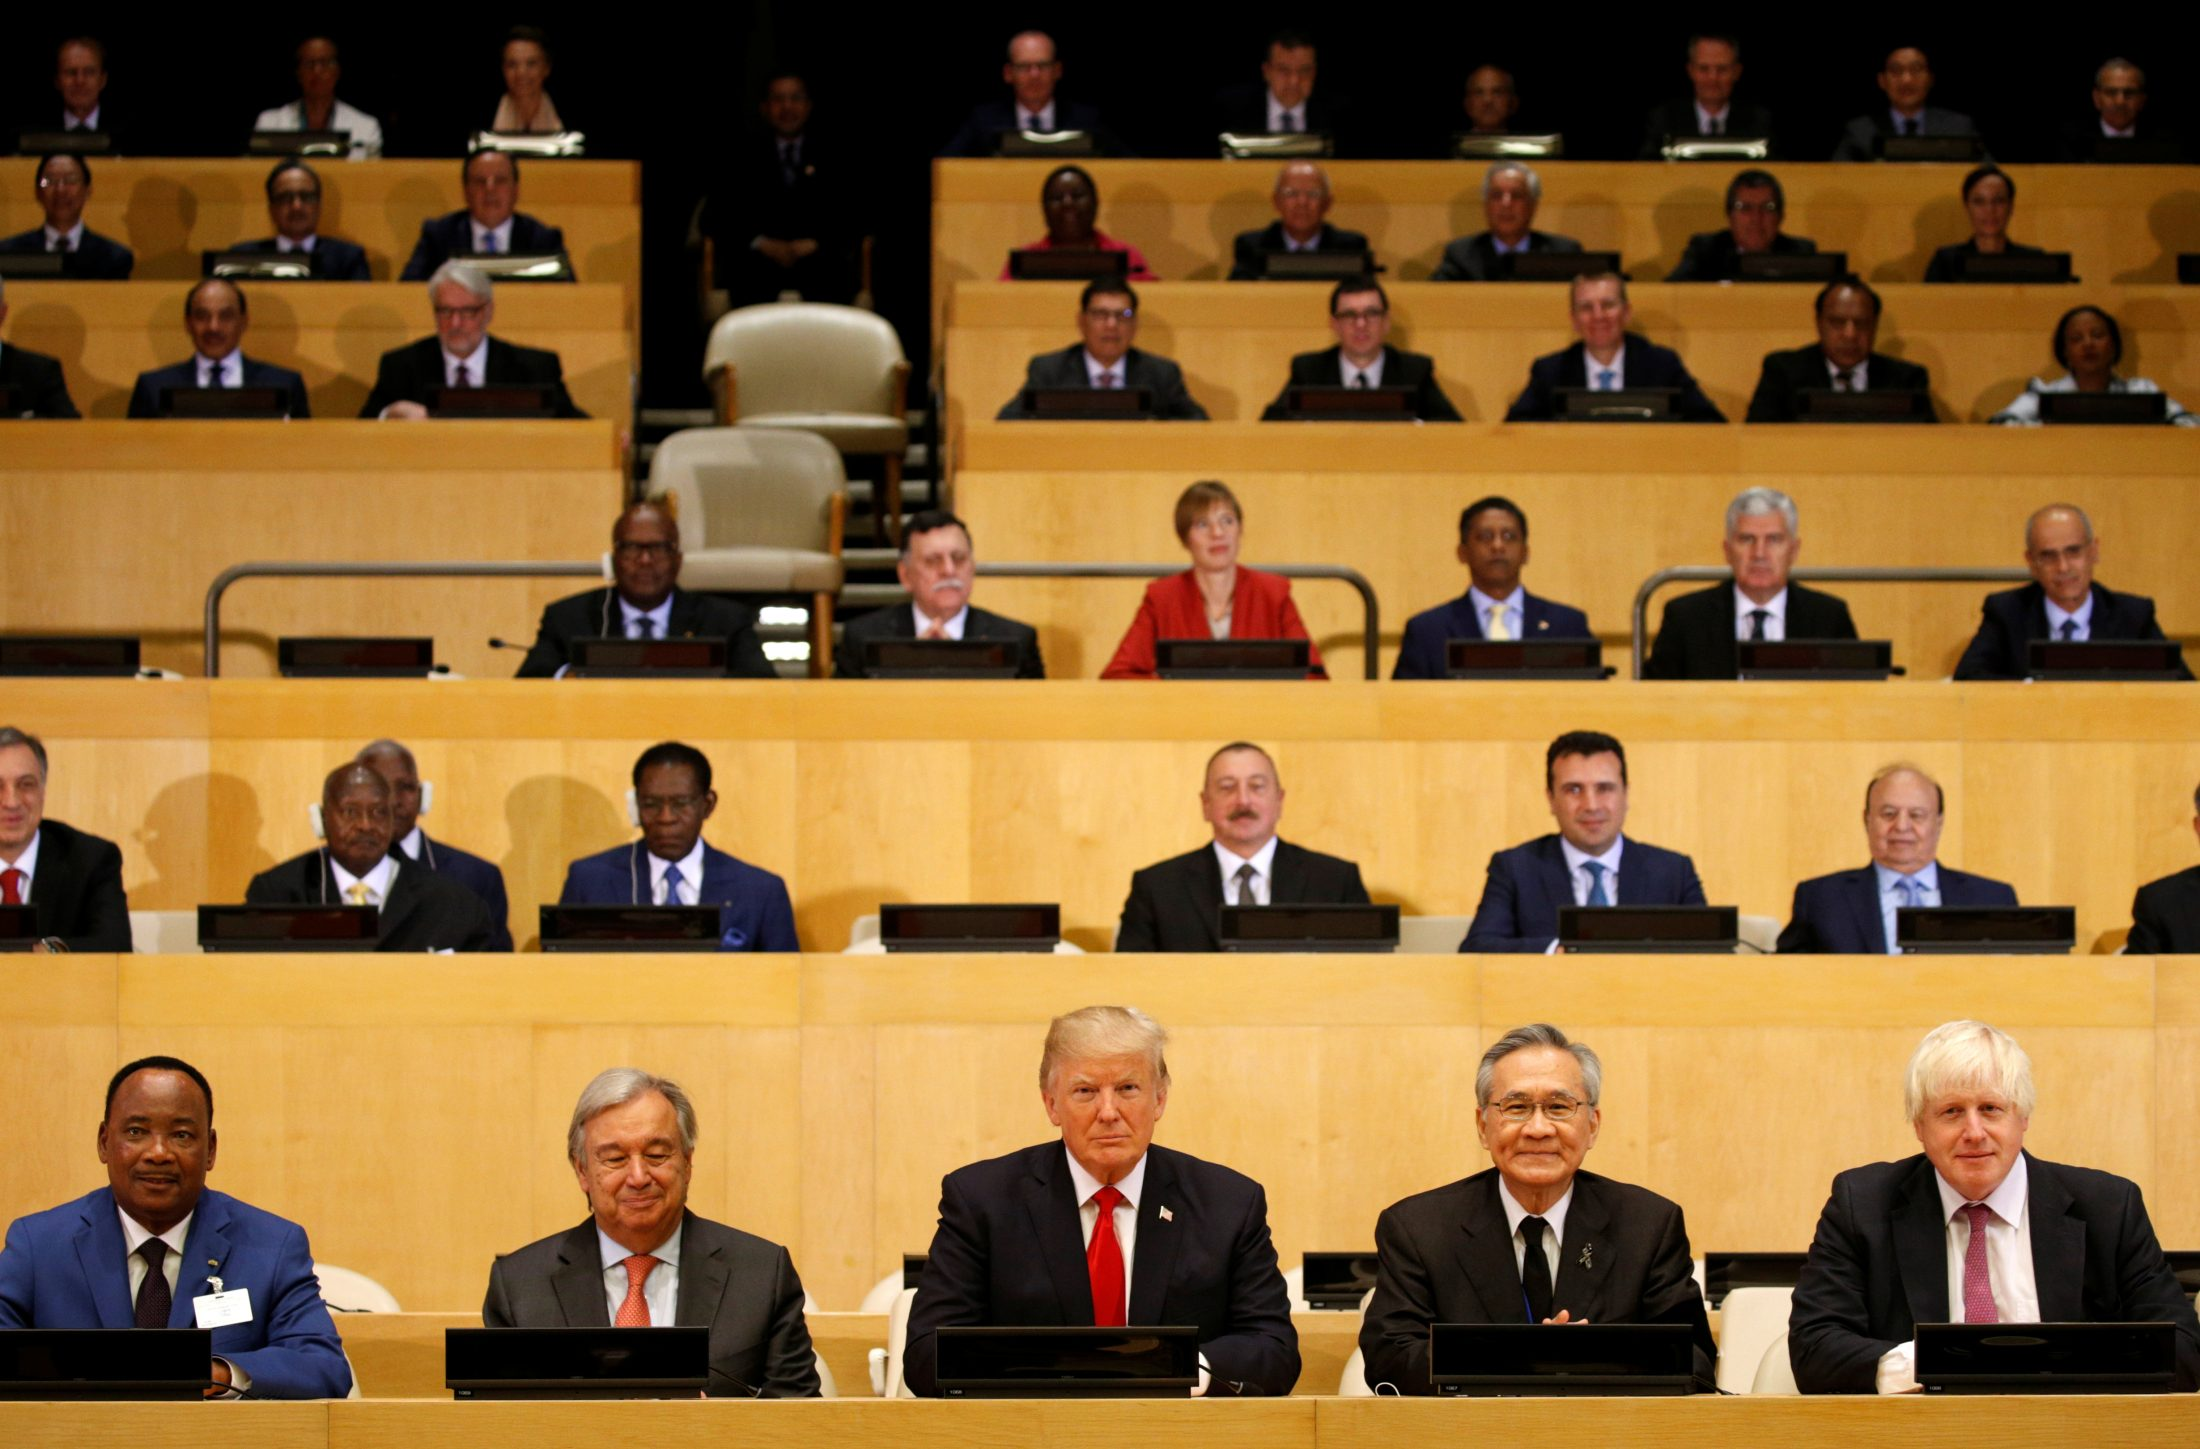 U.S. President Donald Trump participates in a session on reforming the United Nations at UN Headquarters in New York. Photo by Kevin Lamarque/Reuters